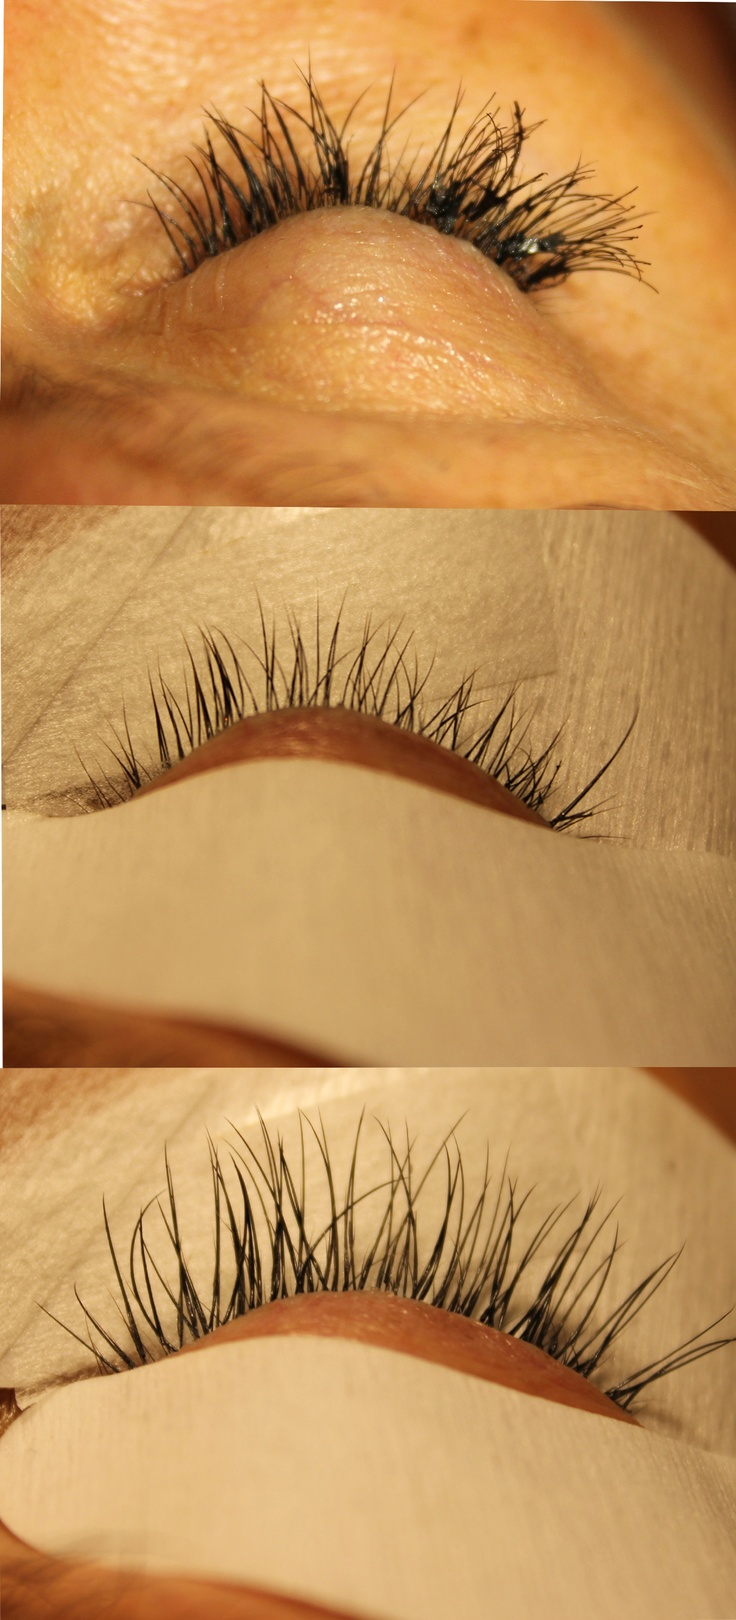 Top picture are cluster lashes done, the middle shows natural lashes, and the bottom is a new application of eyelash extensions